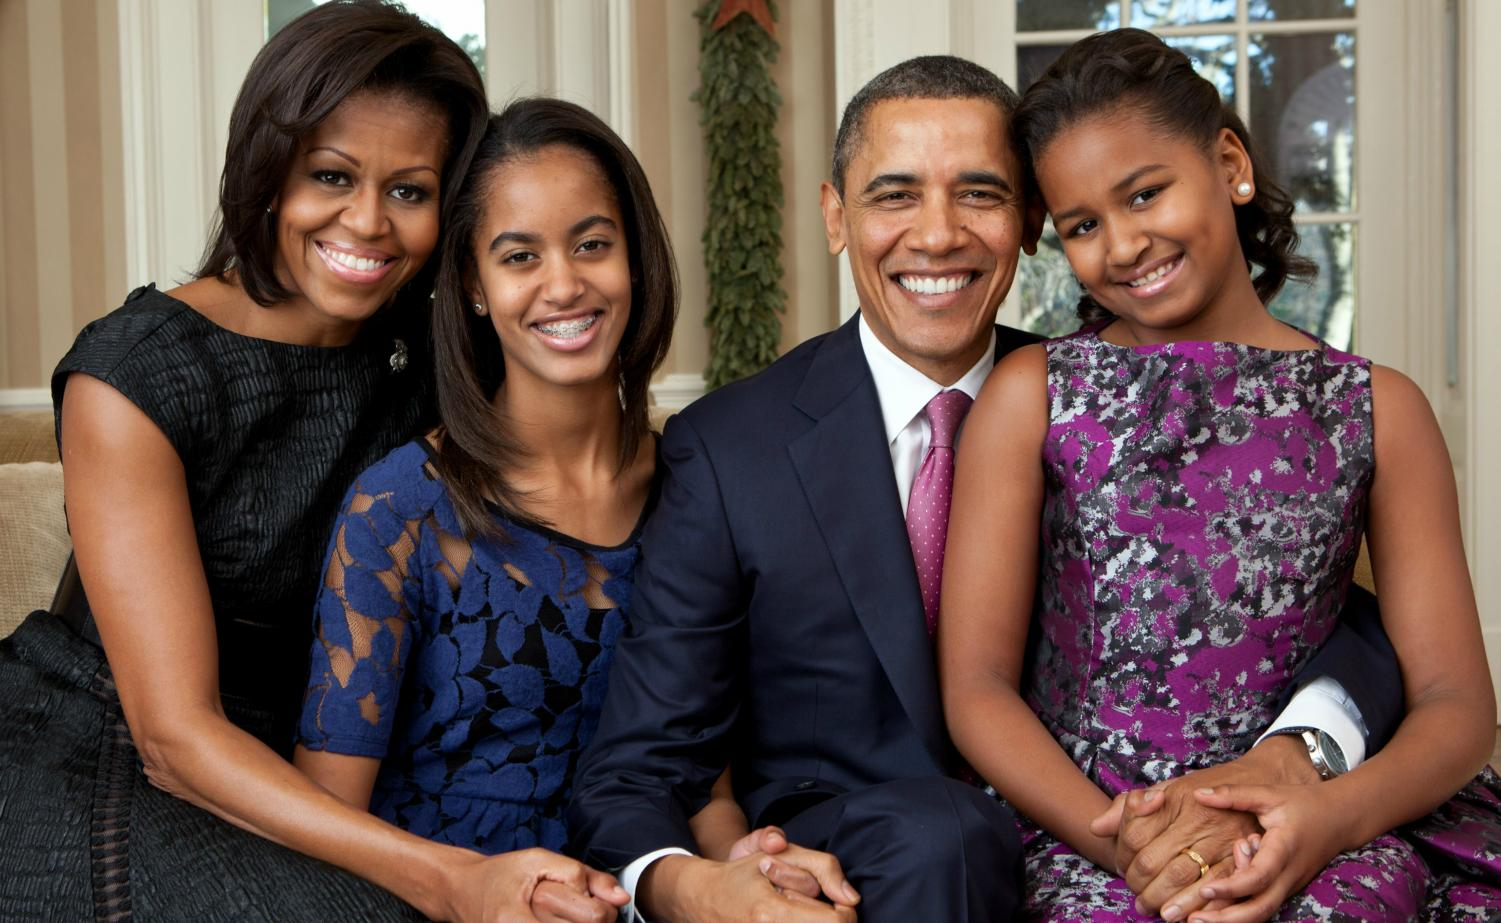 The Obama family in 2011. Former POTUS Barack Obama pictured right center next to his two daughters Sasha and Malia. Former First Lady, Michelle Obama is pictured far left.